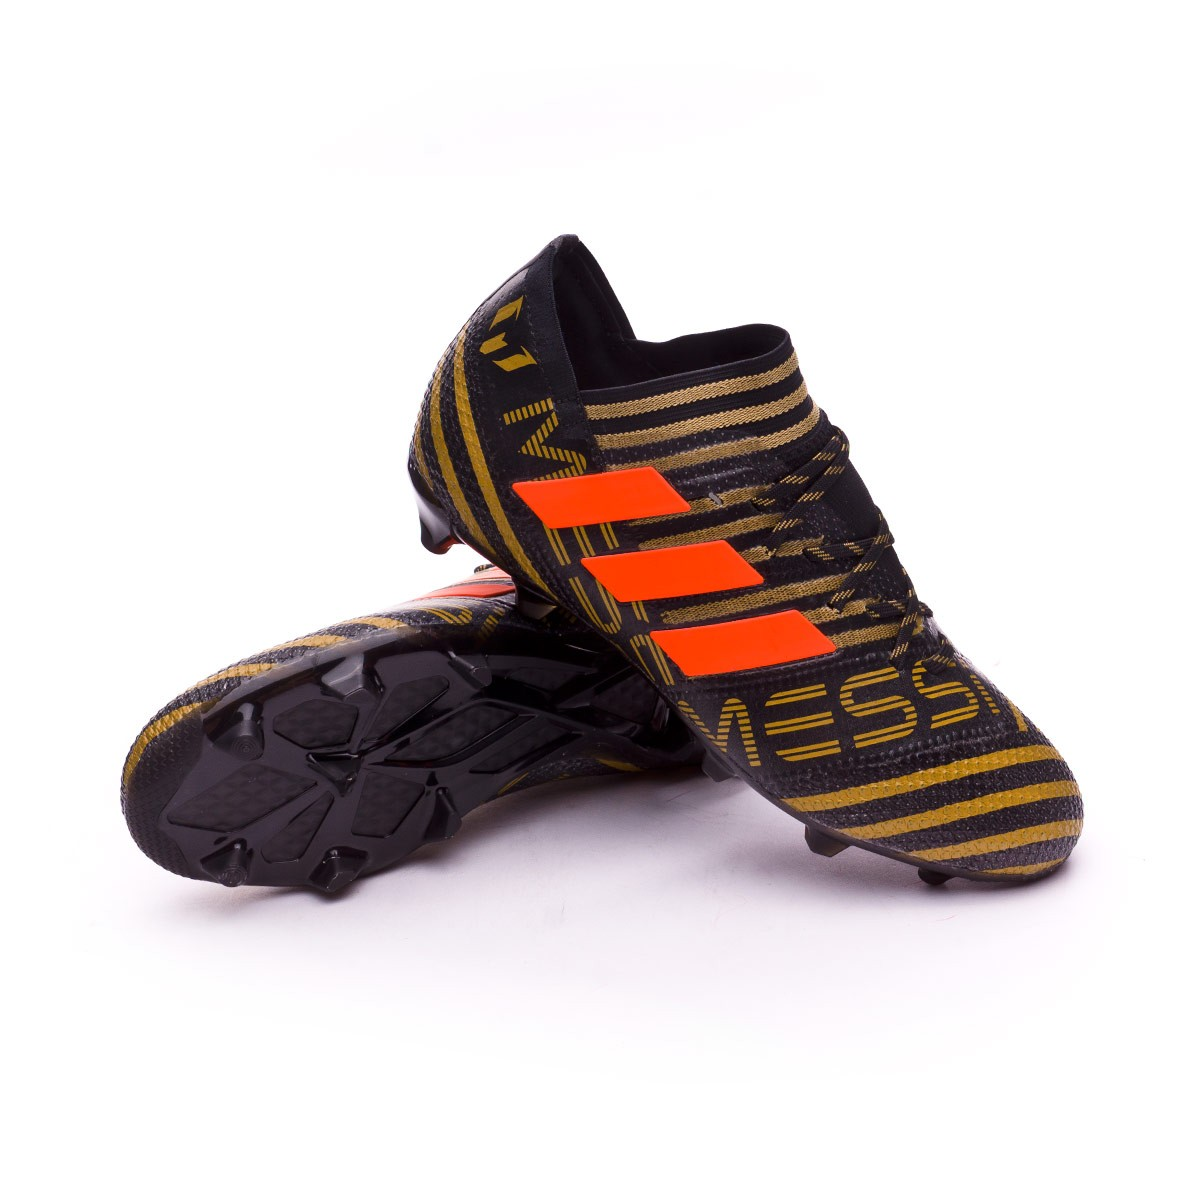 newest cd1a7 475e7 Nemeziz Messi 17.1 FG Niño Core black-Solar red-Tactile gold metallic